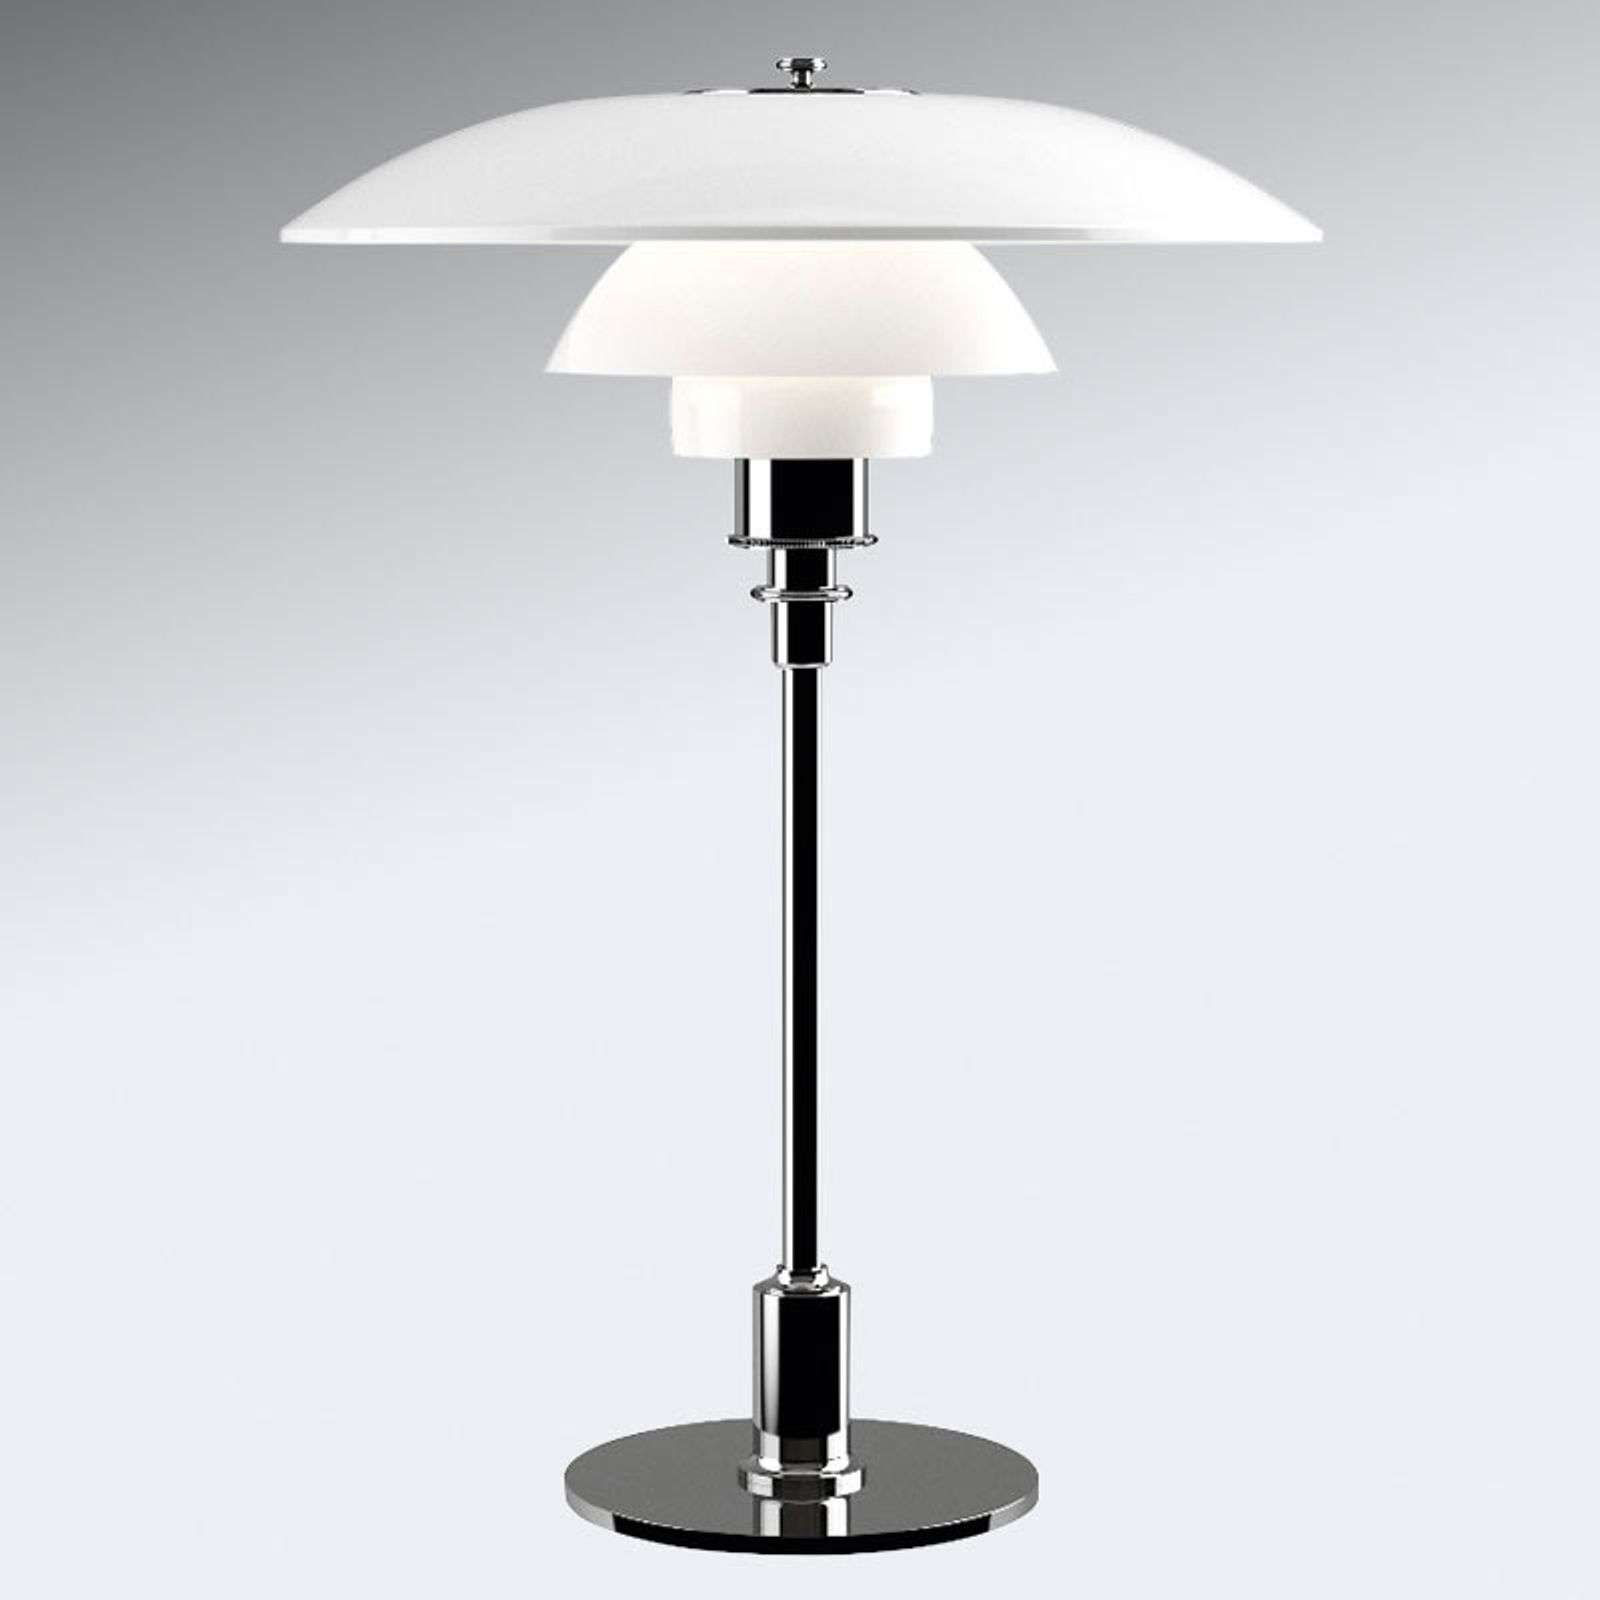 Louis Poulsen Ph 3 1 2 2 1 2 Lampe A Poser Chrome En 2020 Lampes De Table Lampe A Poser Lampe A Poser Design